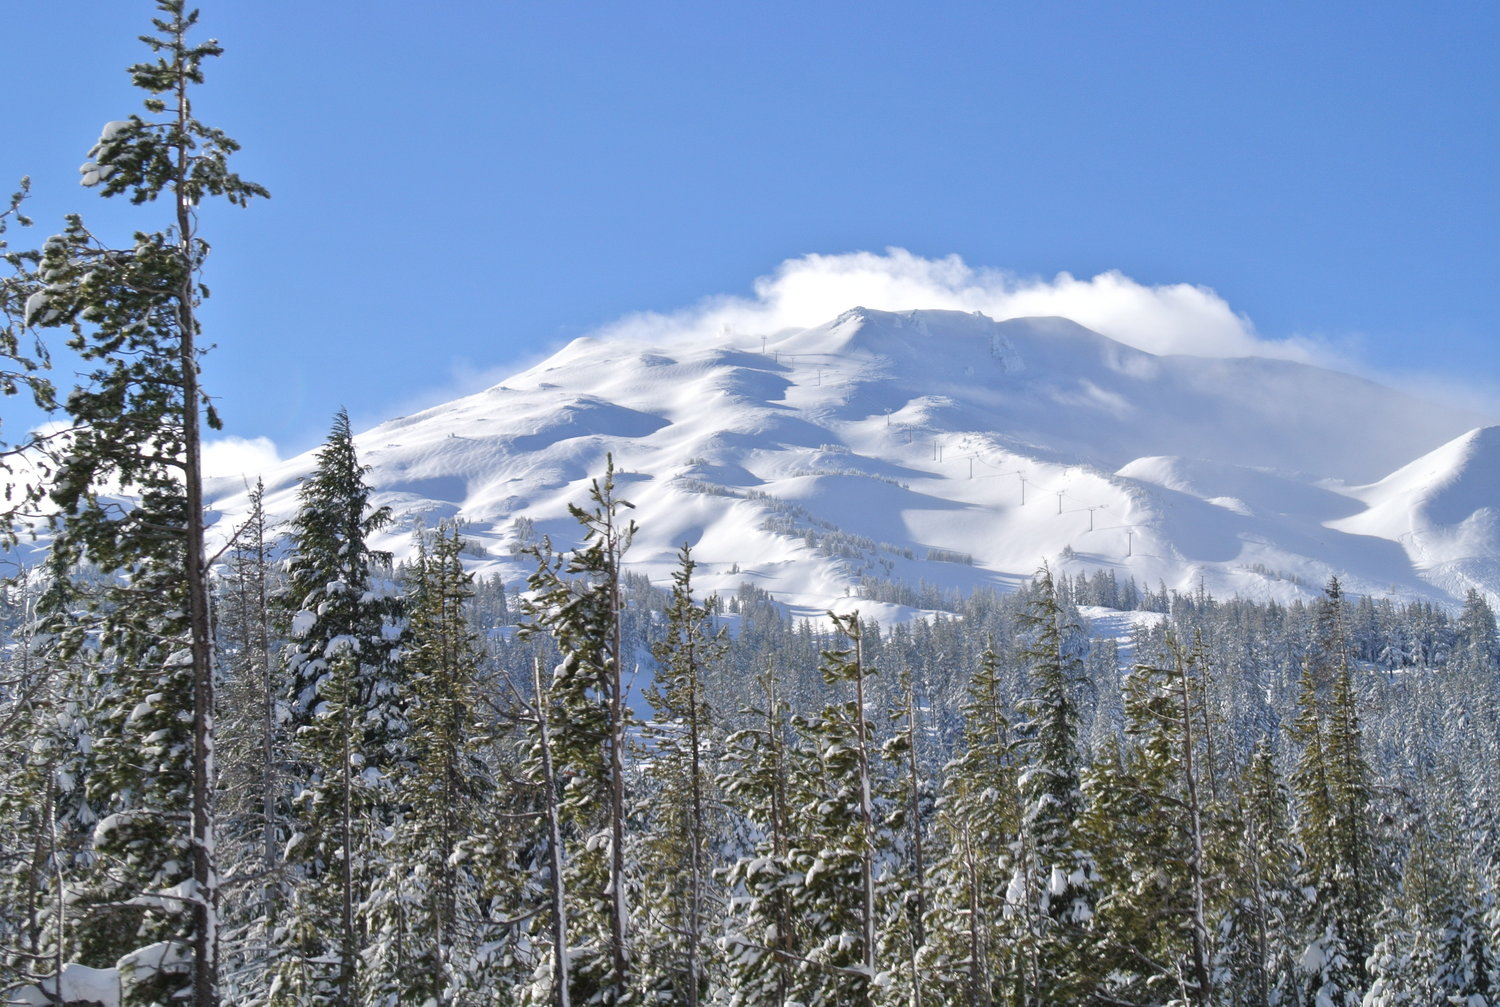 A snowy Mt. Bachelor. Remember the snow also falls in Bend